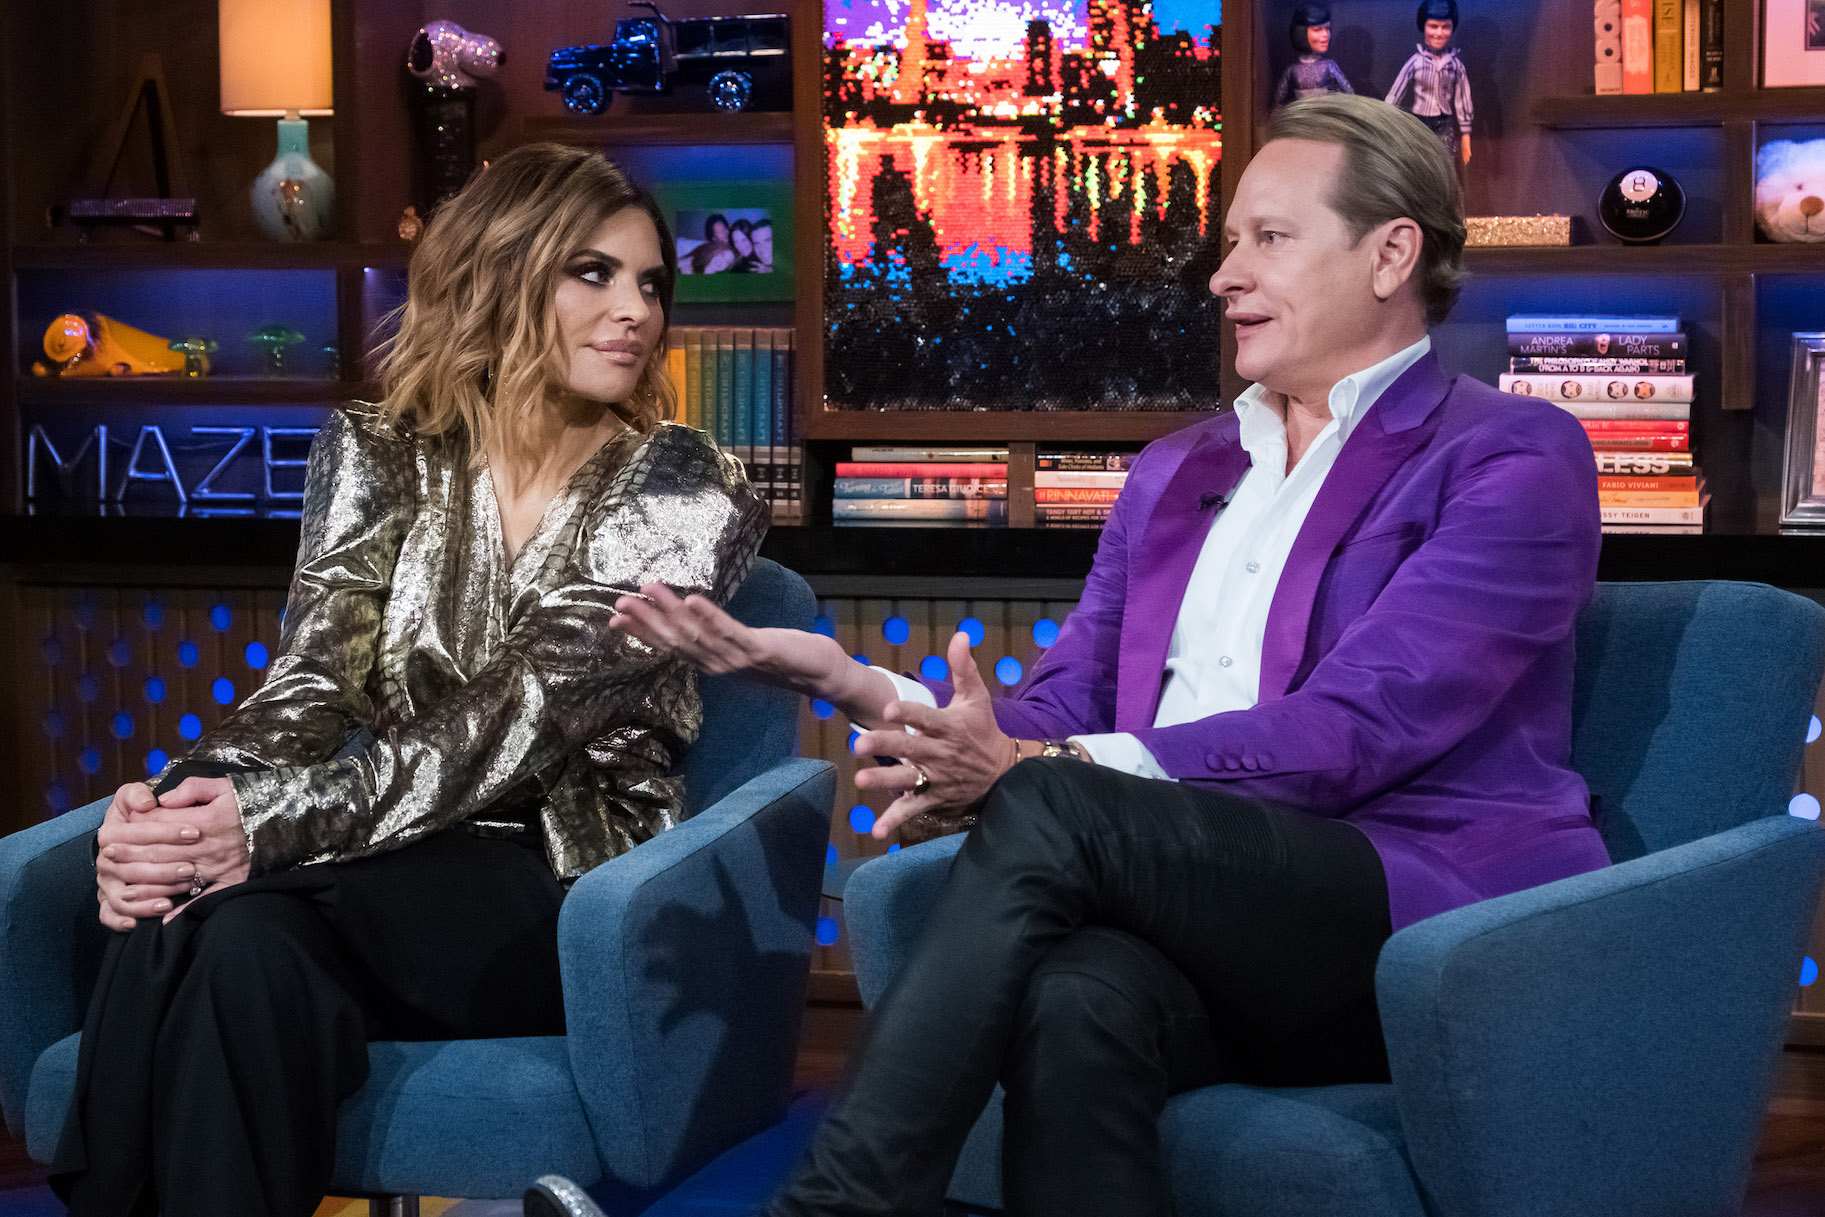 16027-Lisa-Rinna-and-Carson-Kressley